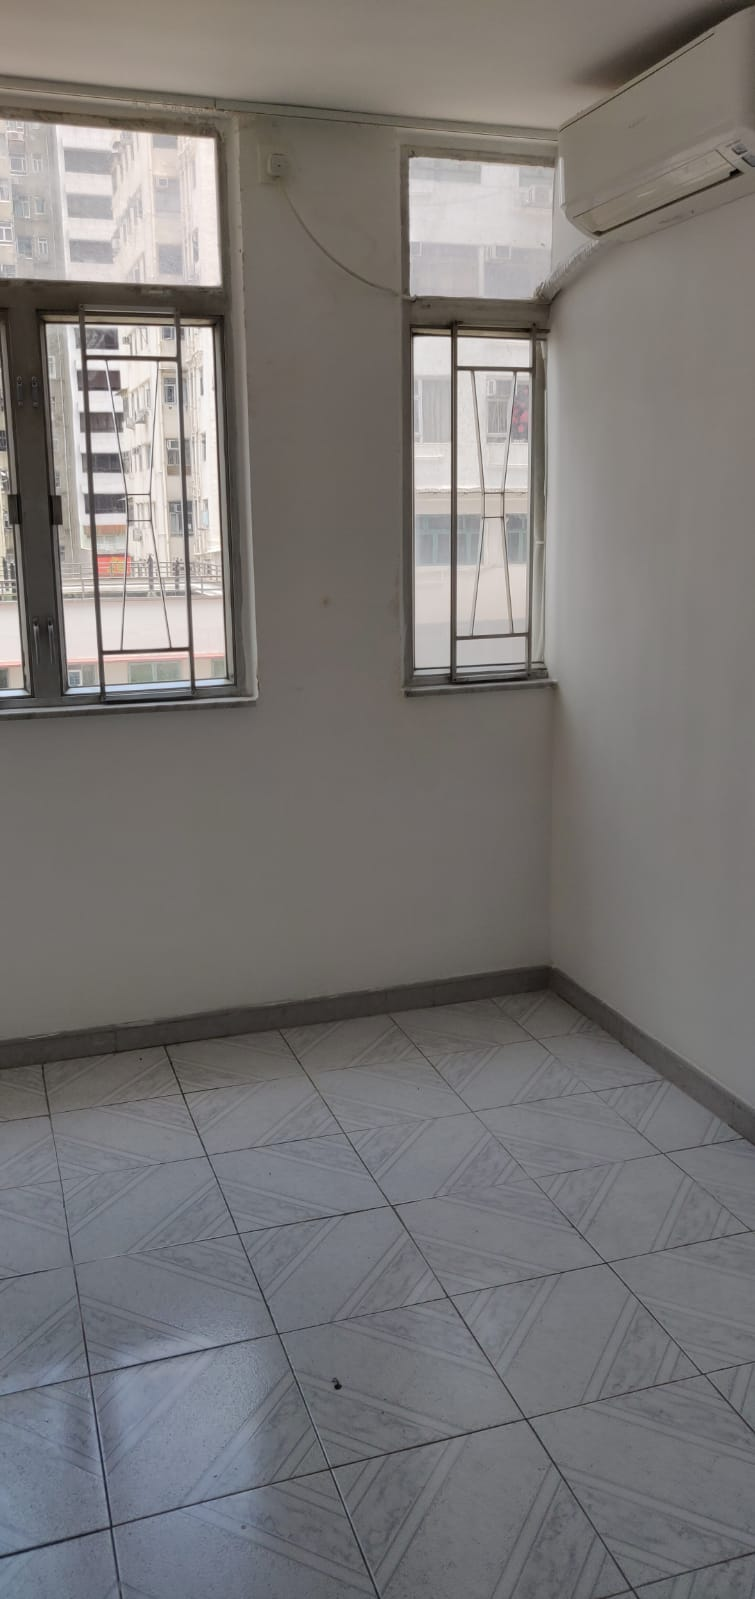 [Causeway Bay]  YAN WO YUET BUILDING, Lower Floor Flat, 2 rooms 1 toilet